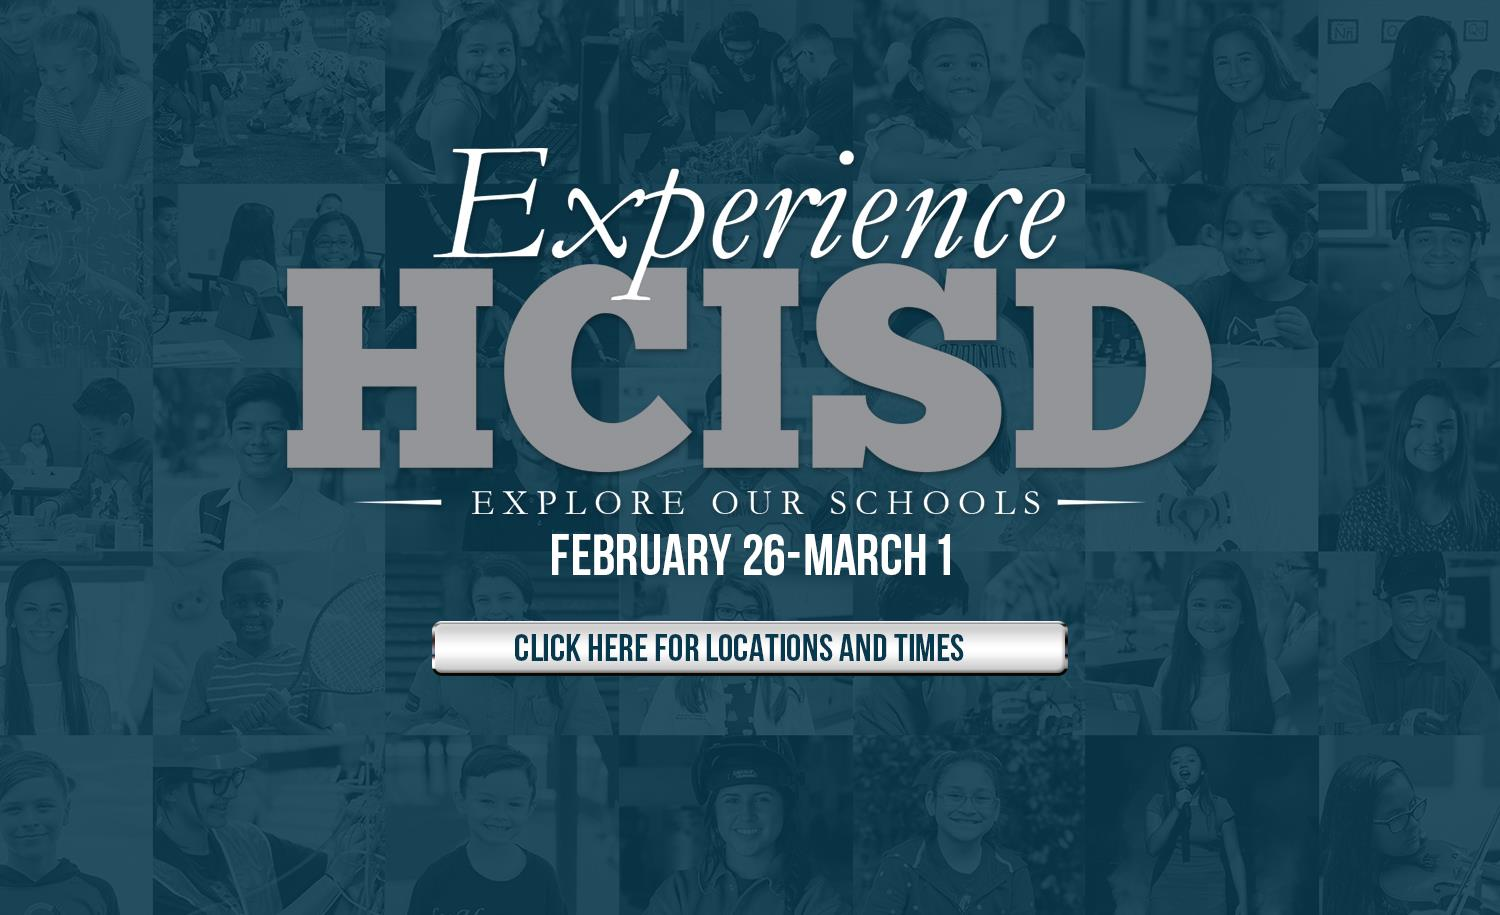 Experience HCISD: Explore Our Schools